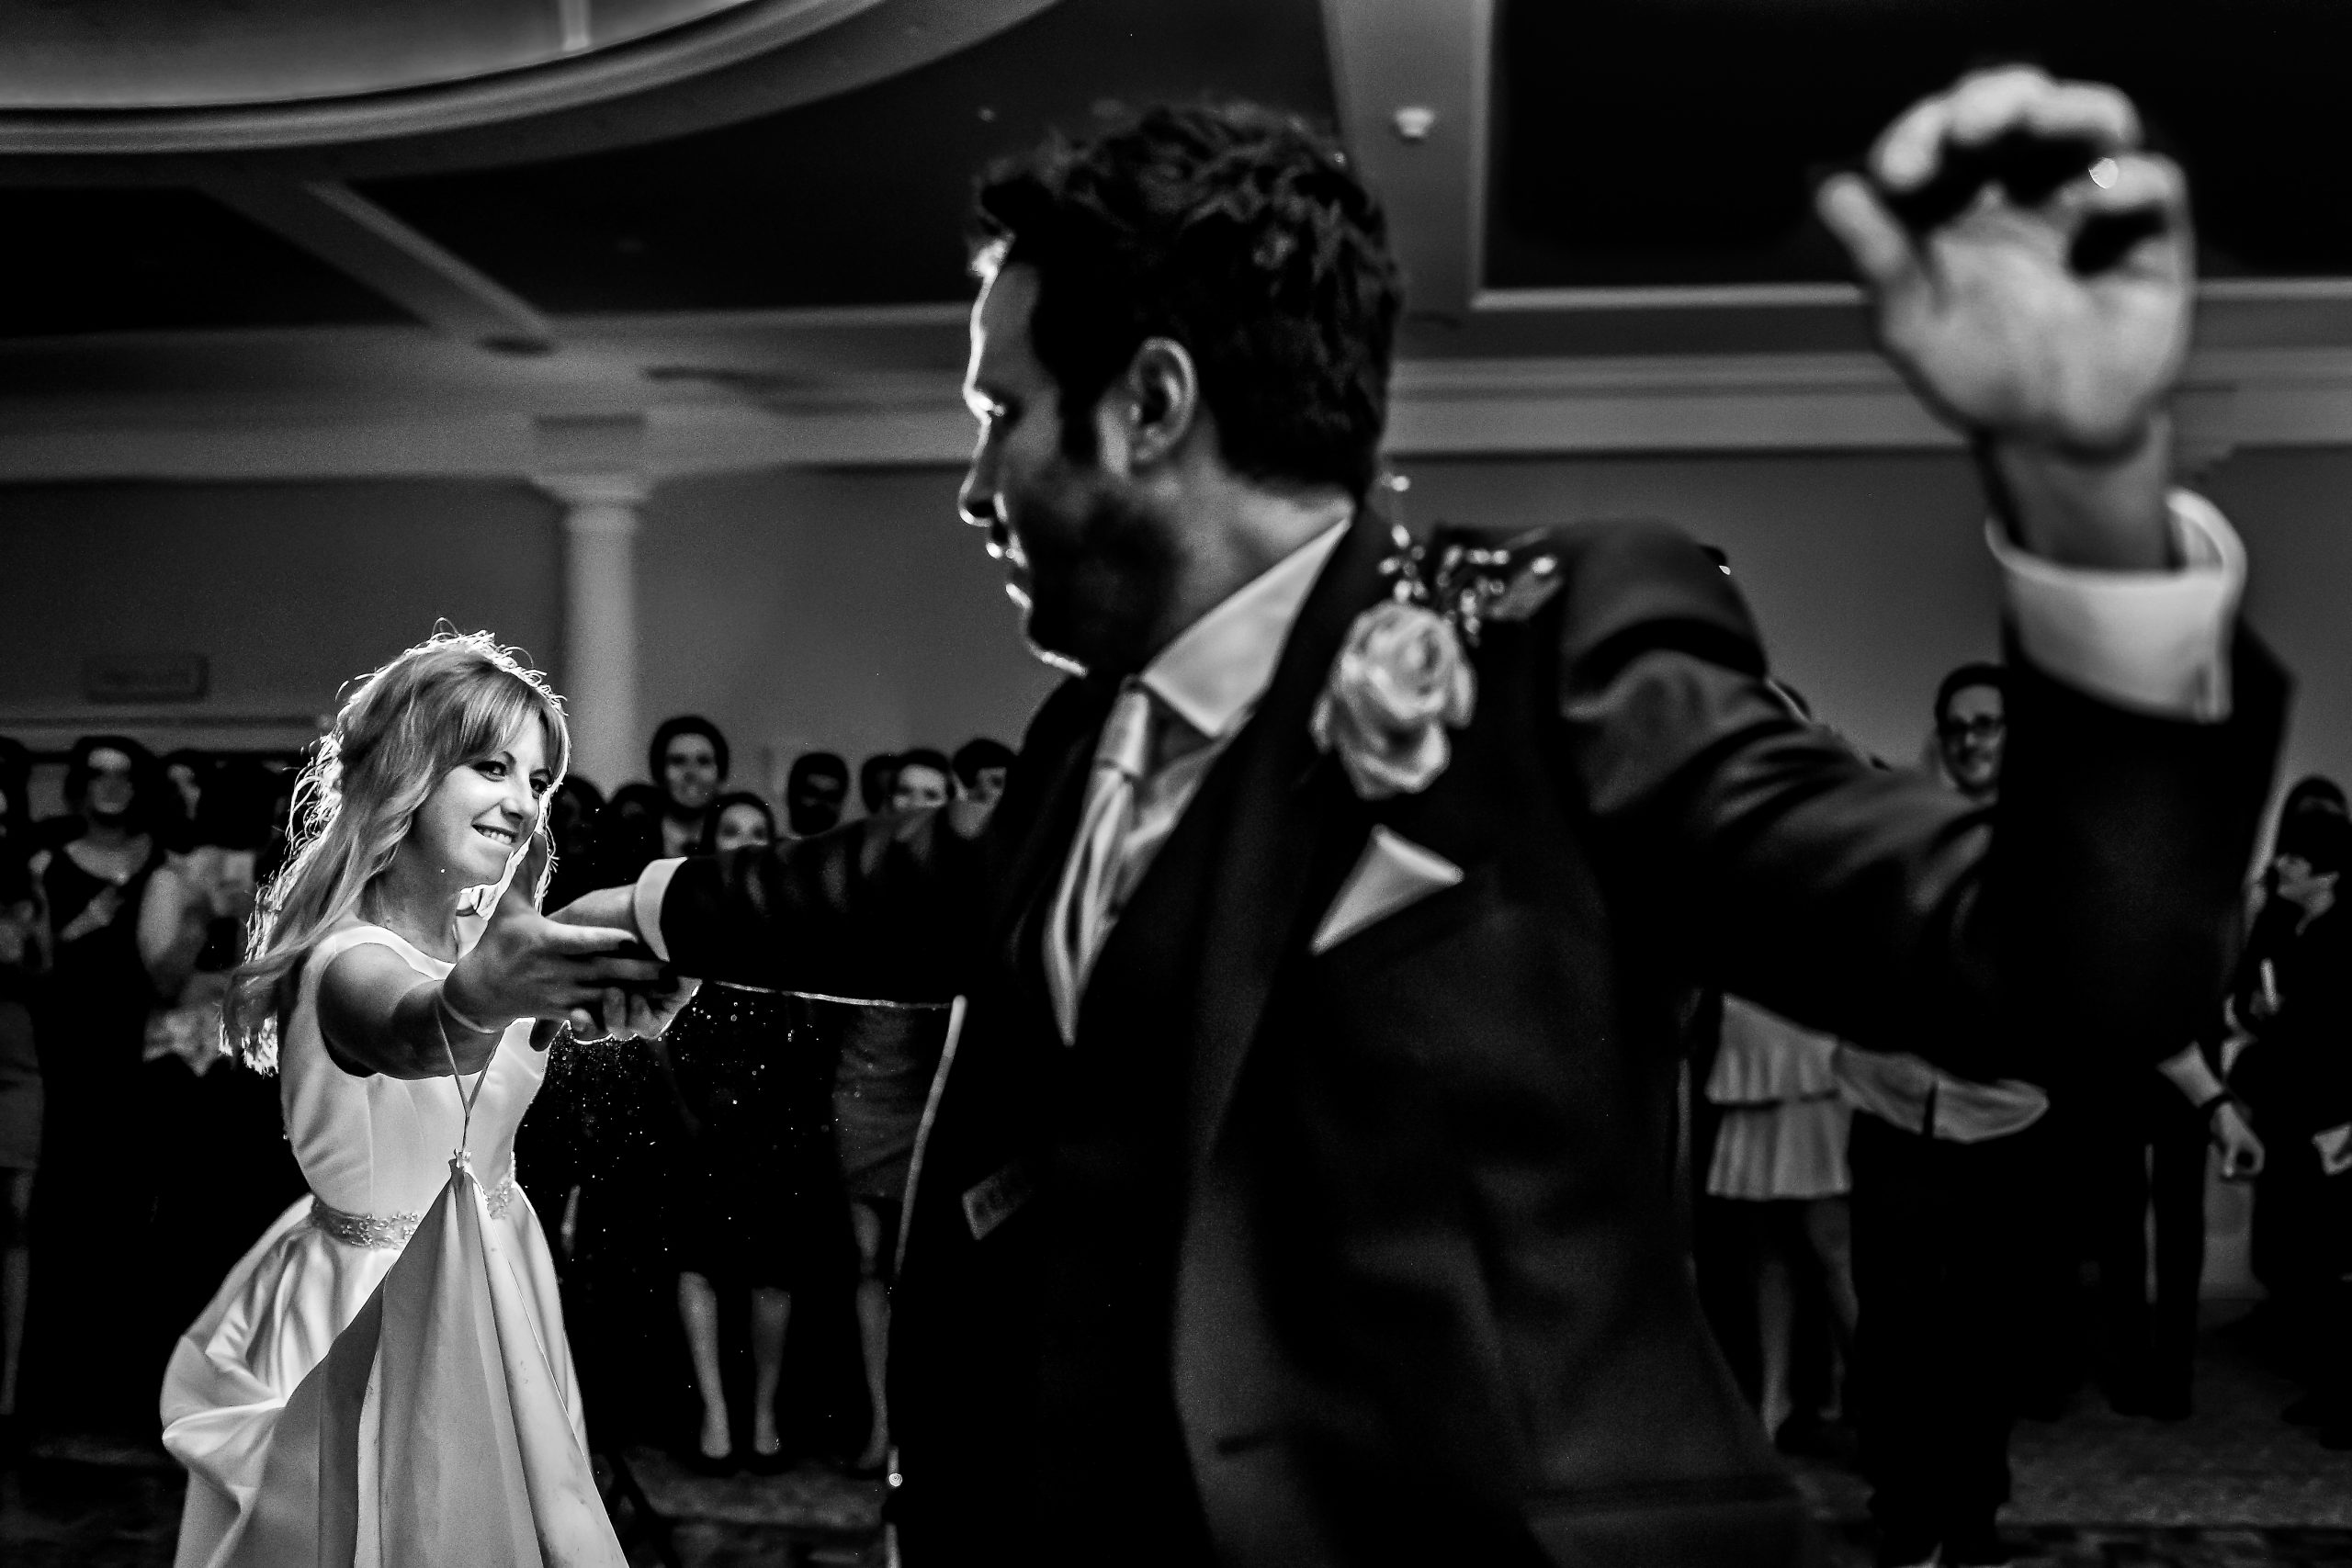 Groom dances with bride as partygoers watch